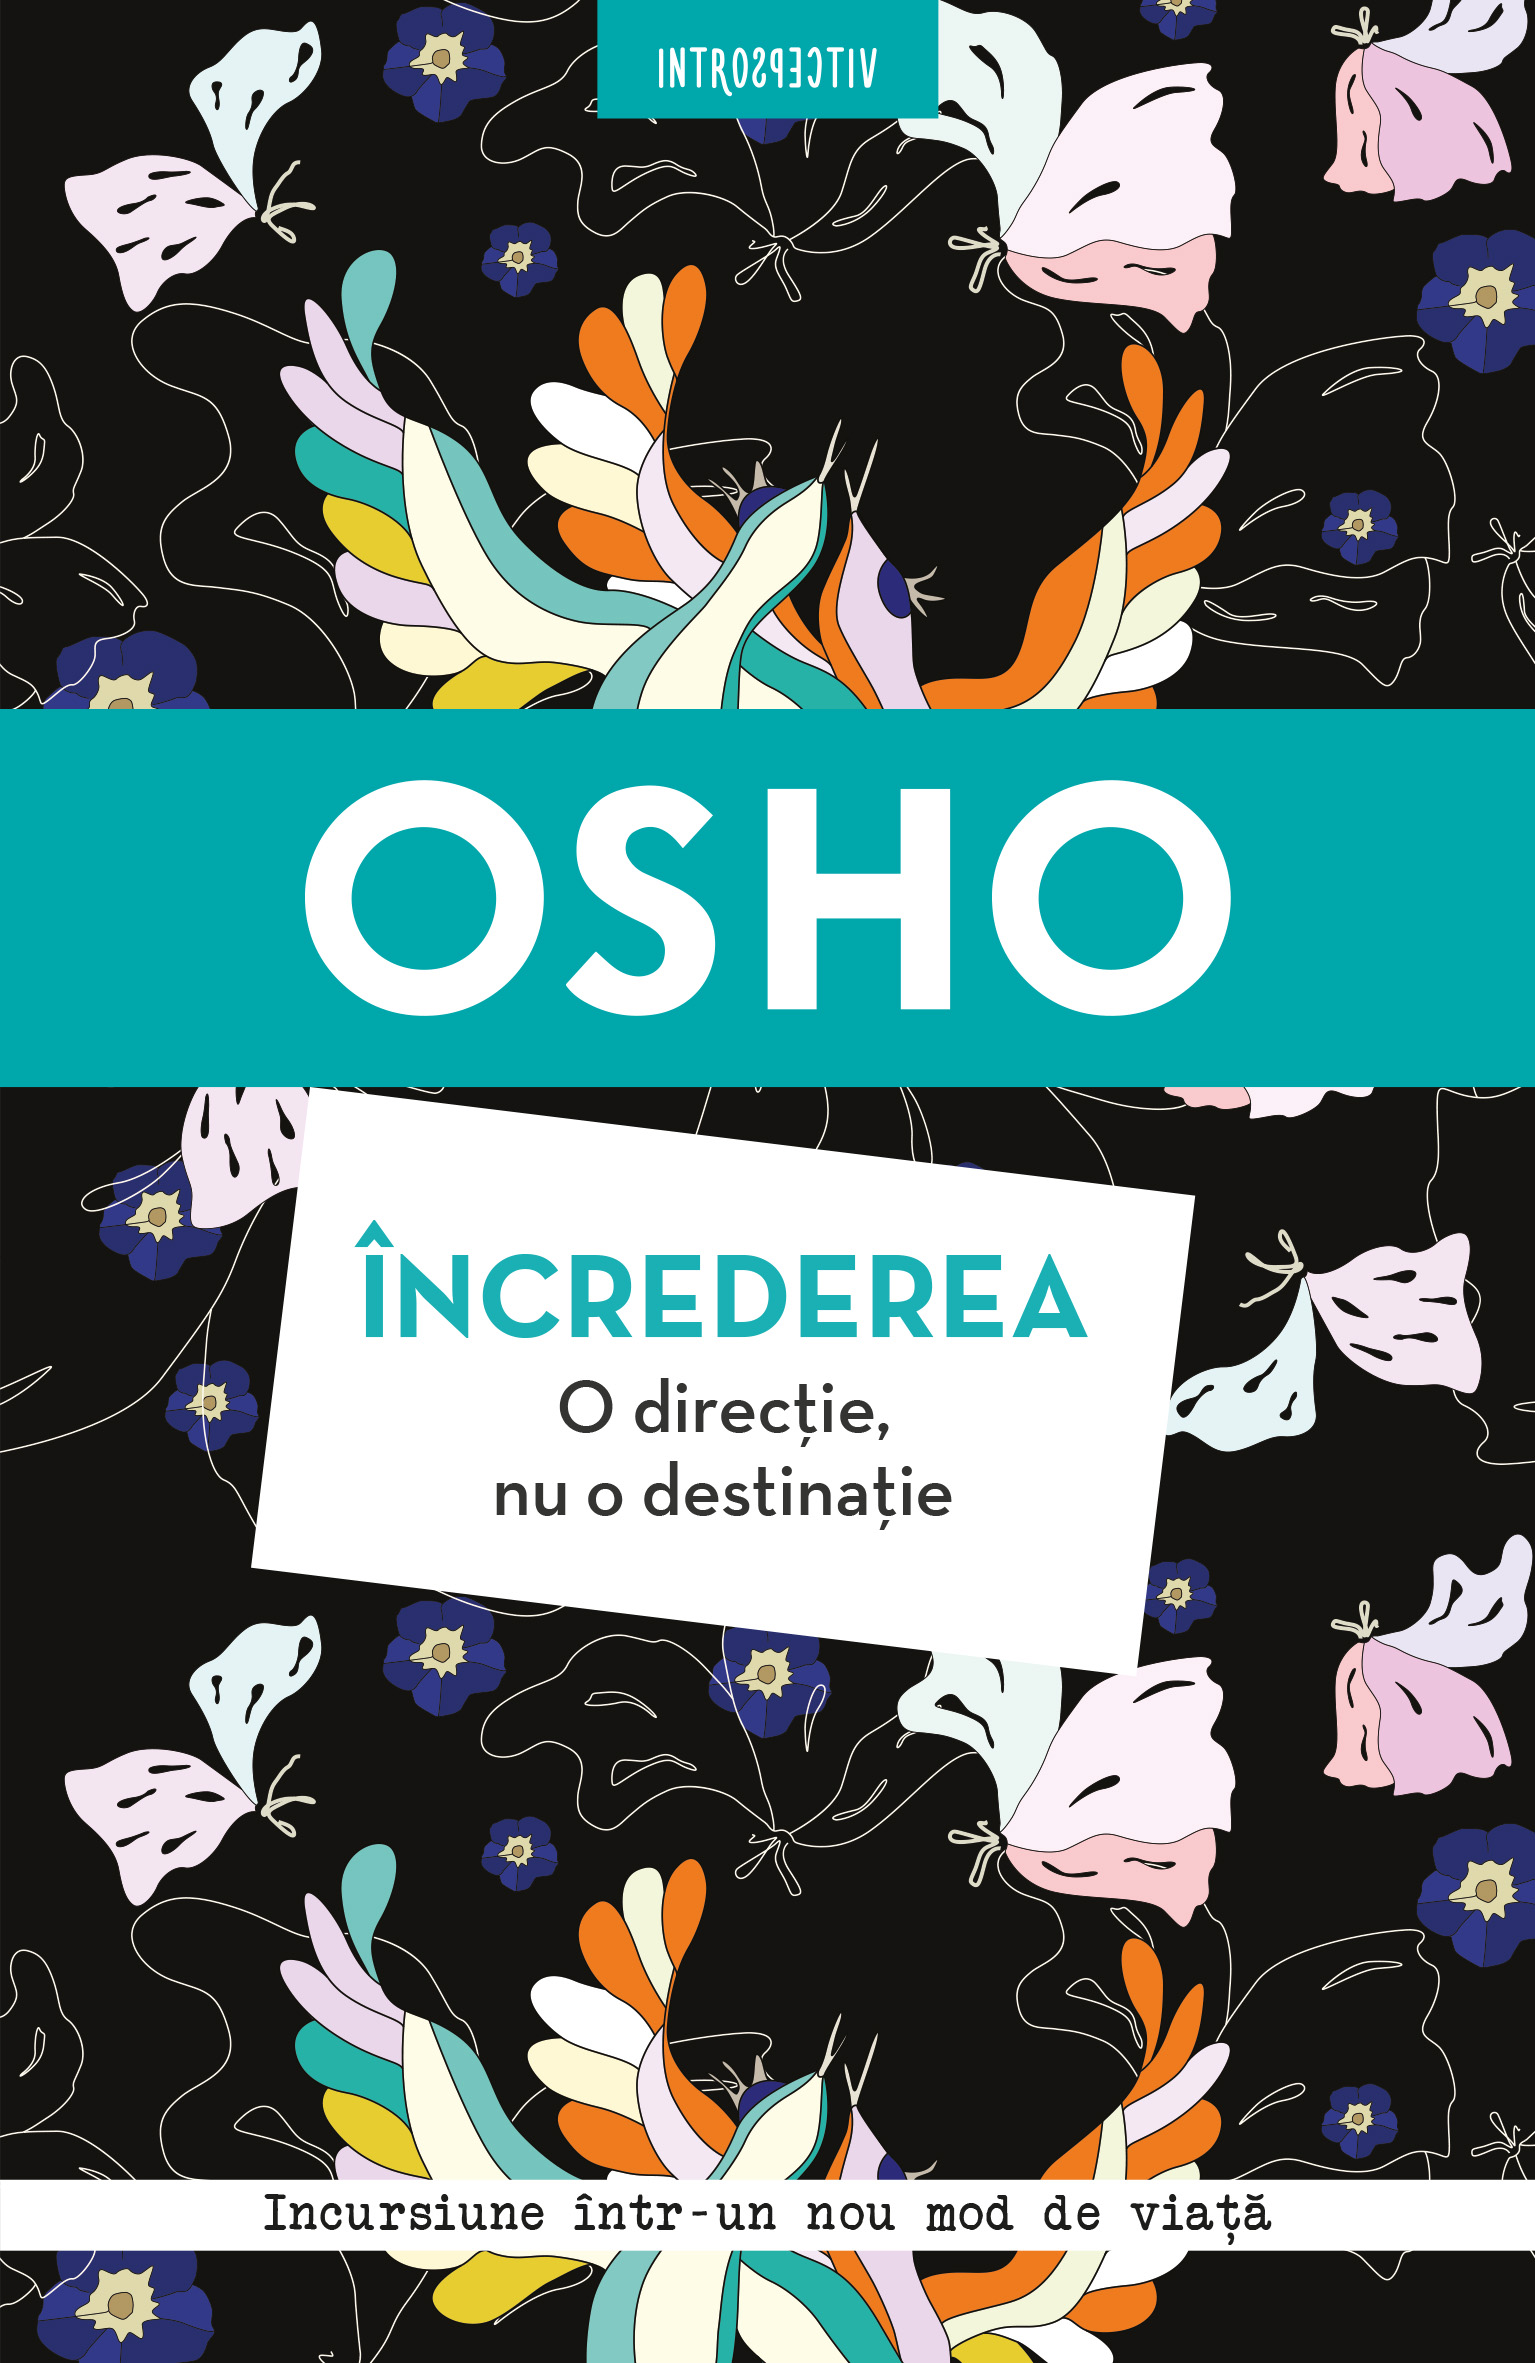 Osho. Încrederea. O direcție, nu o destinație imagine 2021